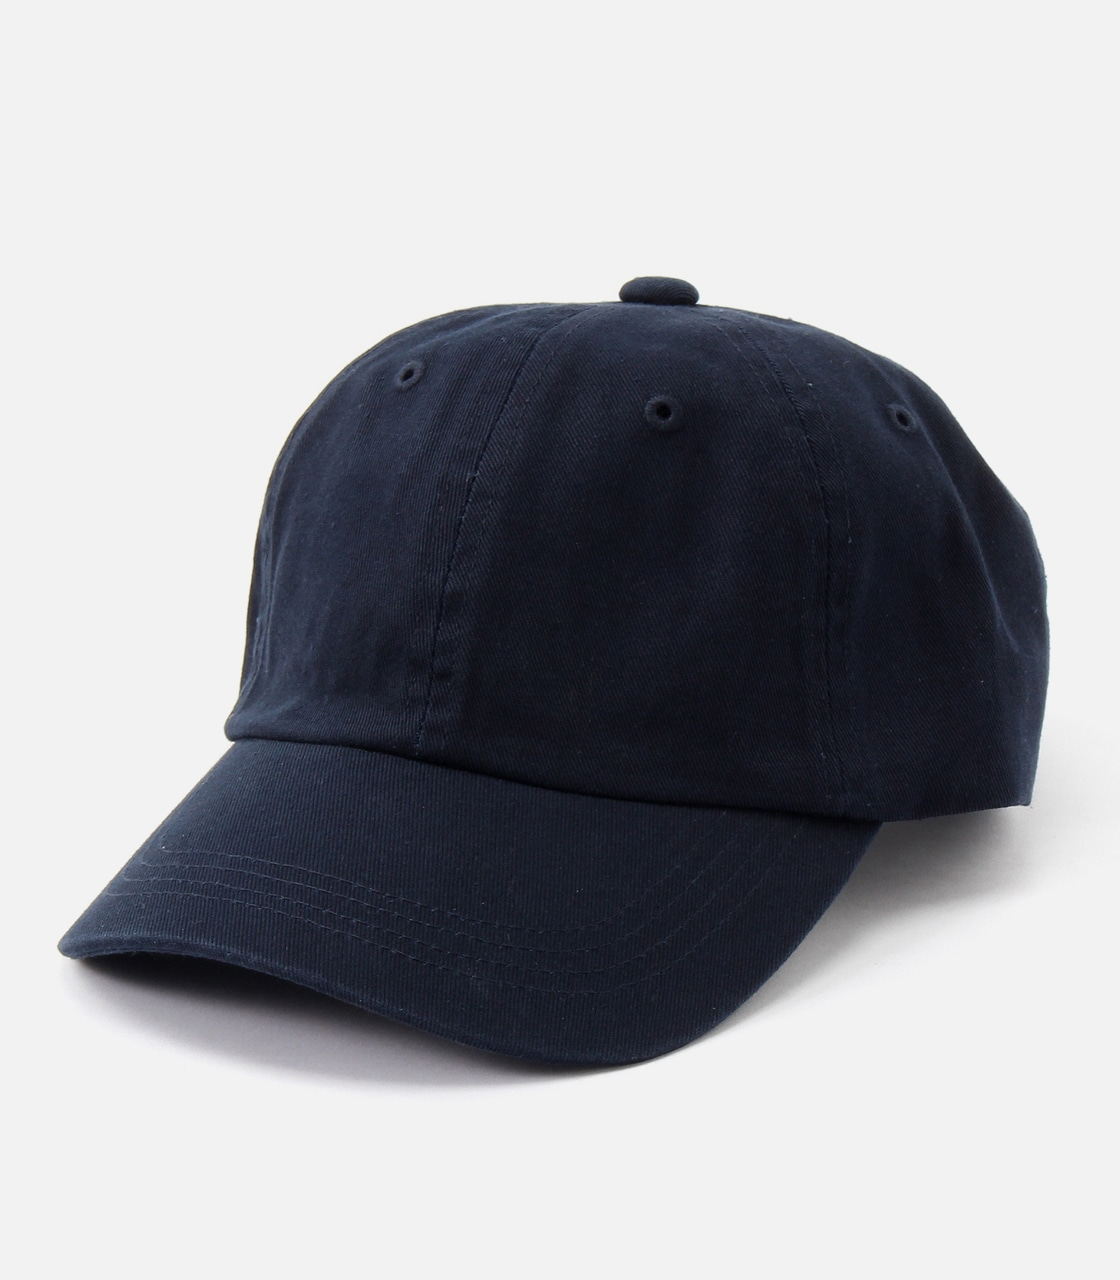 【AZUL BY MOUSSY】BASIC TWILL CAP 【MOOK49掲載 90020】 詳細画像 NVY 1